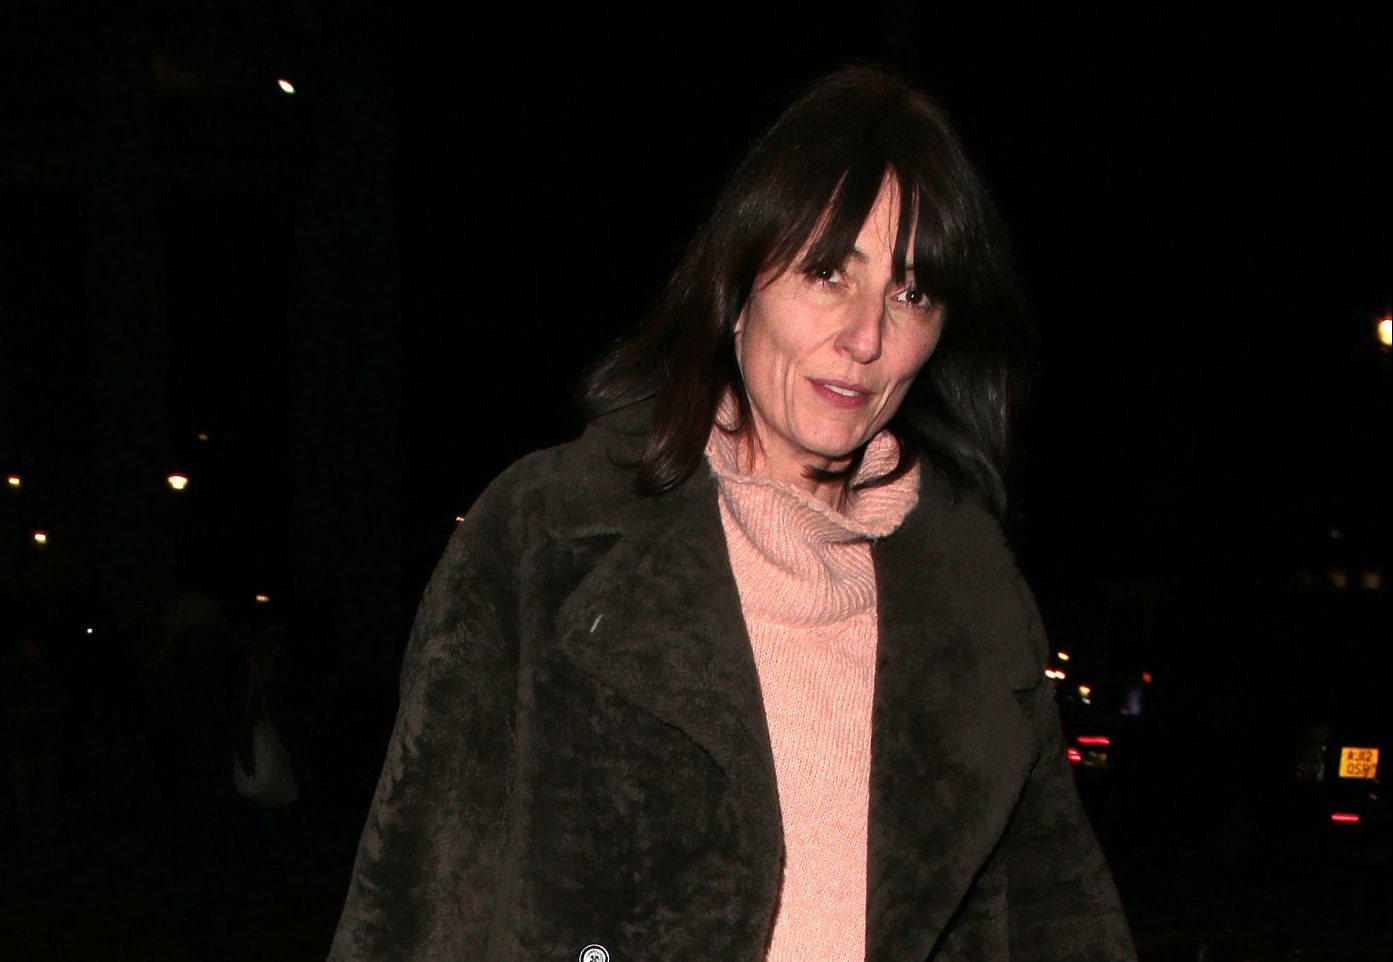 Davina McCall gets into Christmas spirit with carol concert amid marriage woes